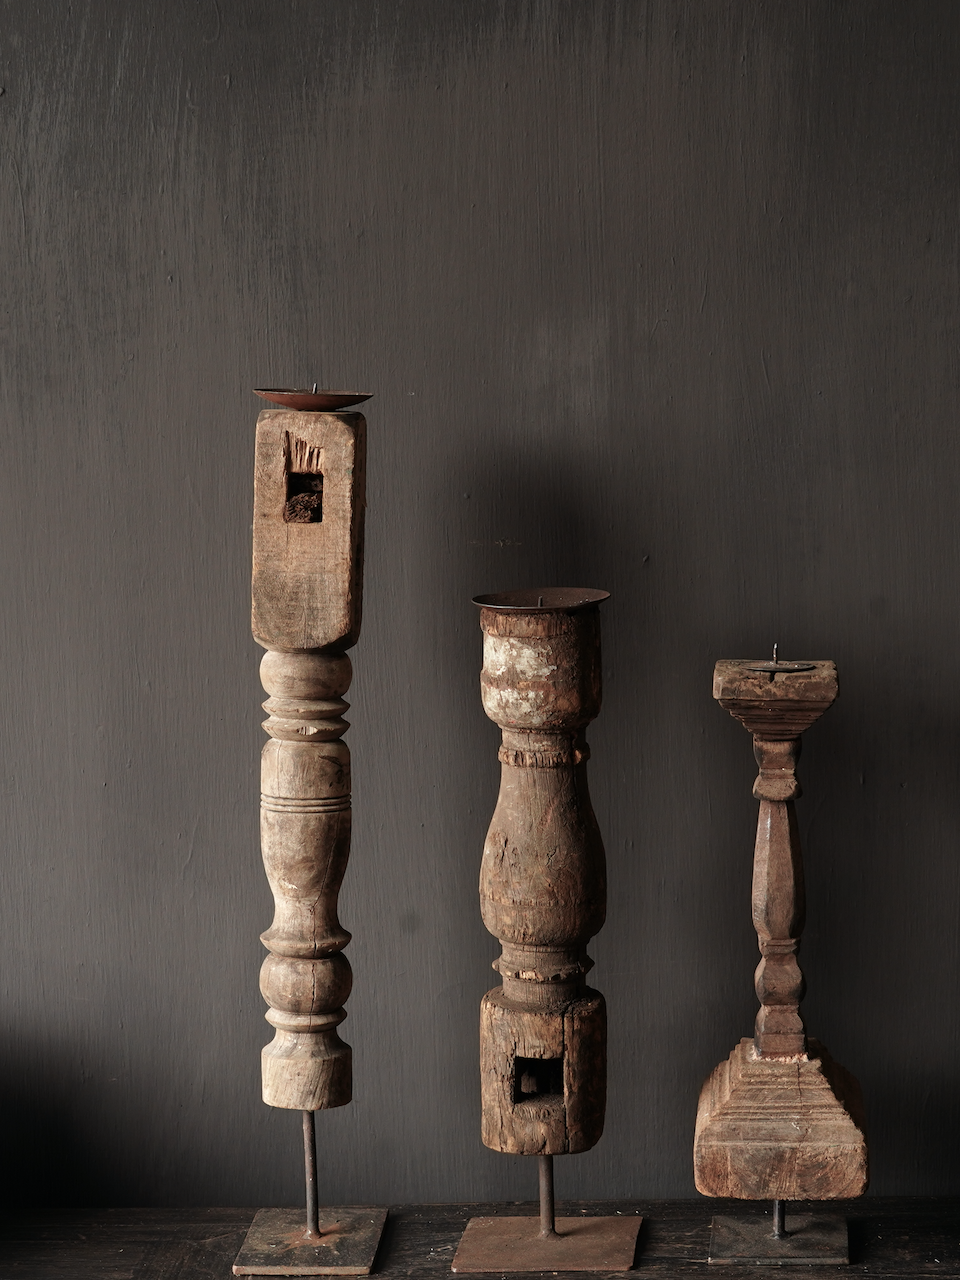 Wooden Nepalese candlestick made of old ornament-4